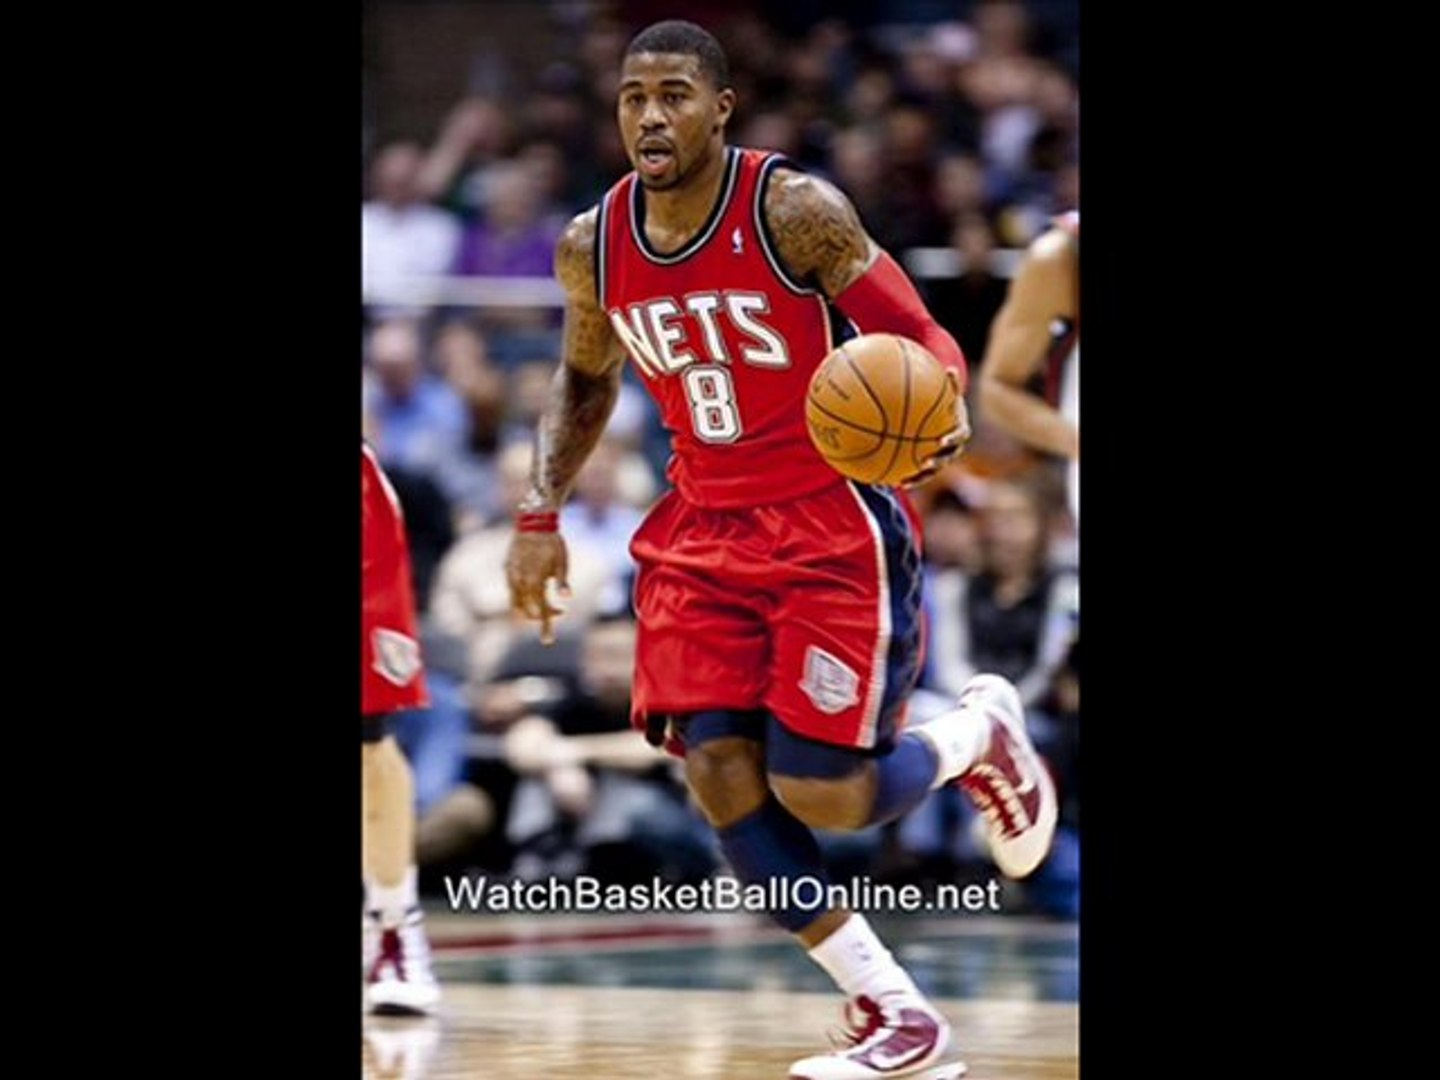 watch Basketball 76ers vs Pacers  Pacers   online